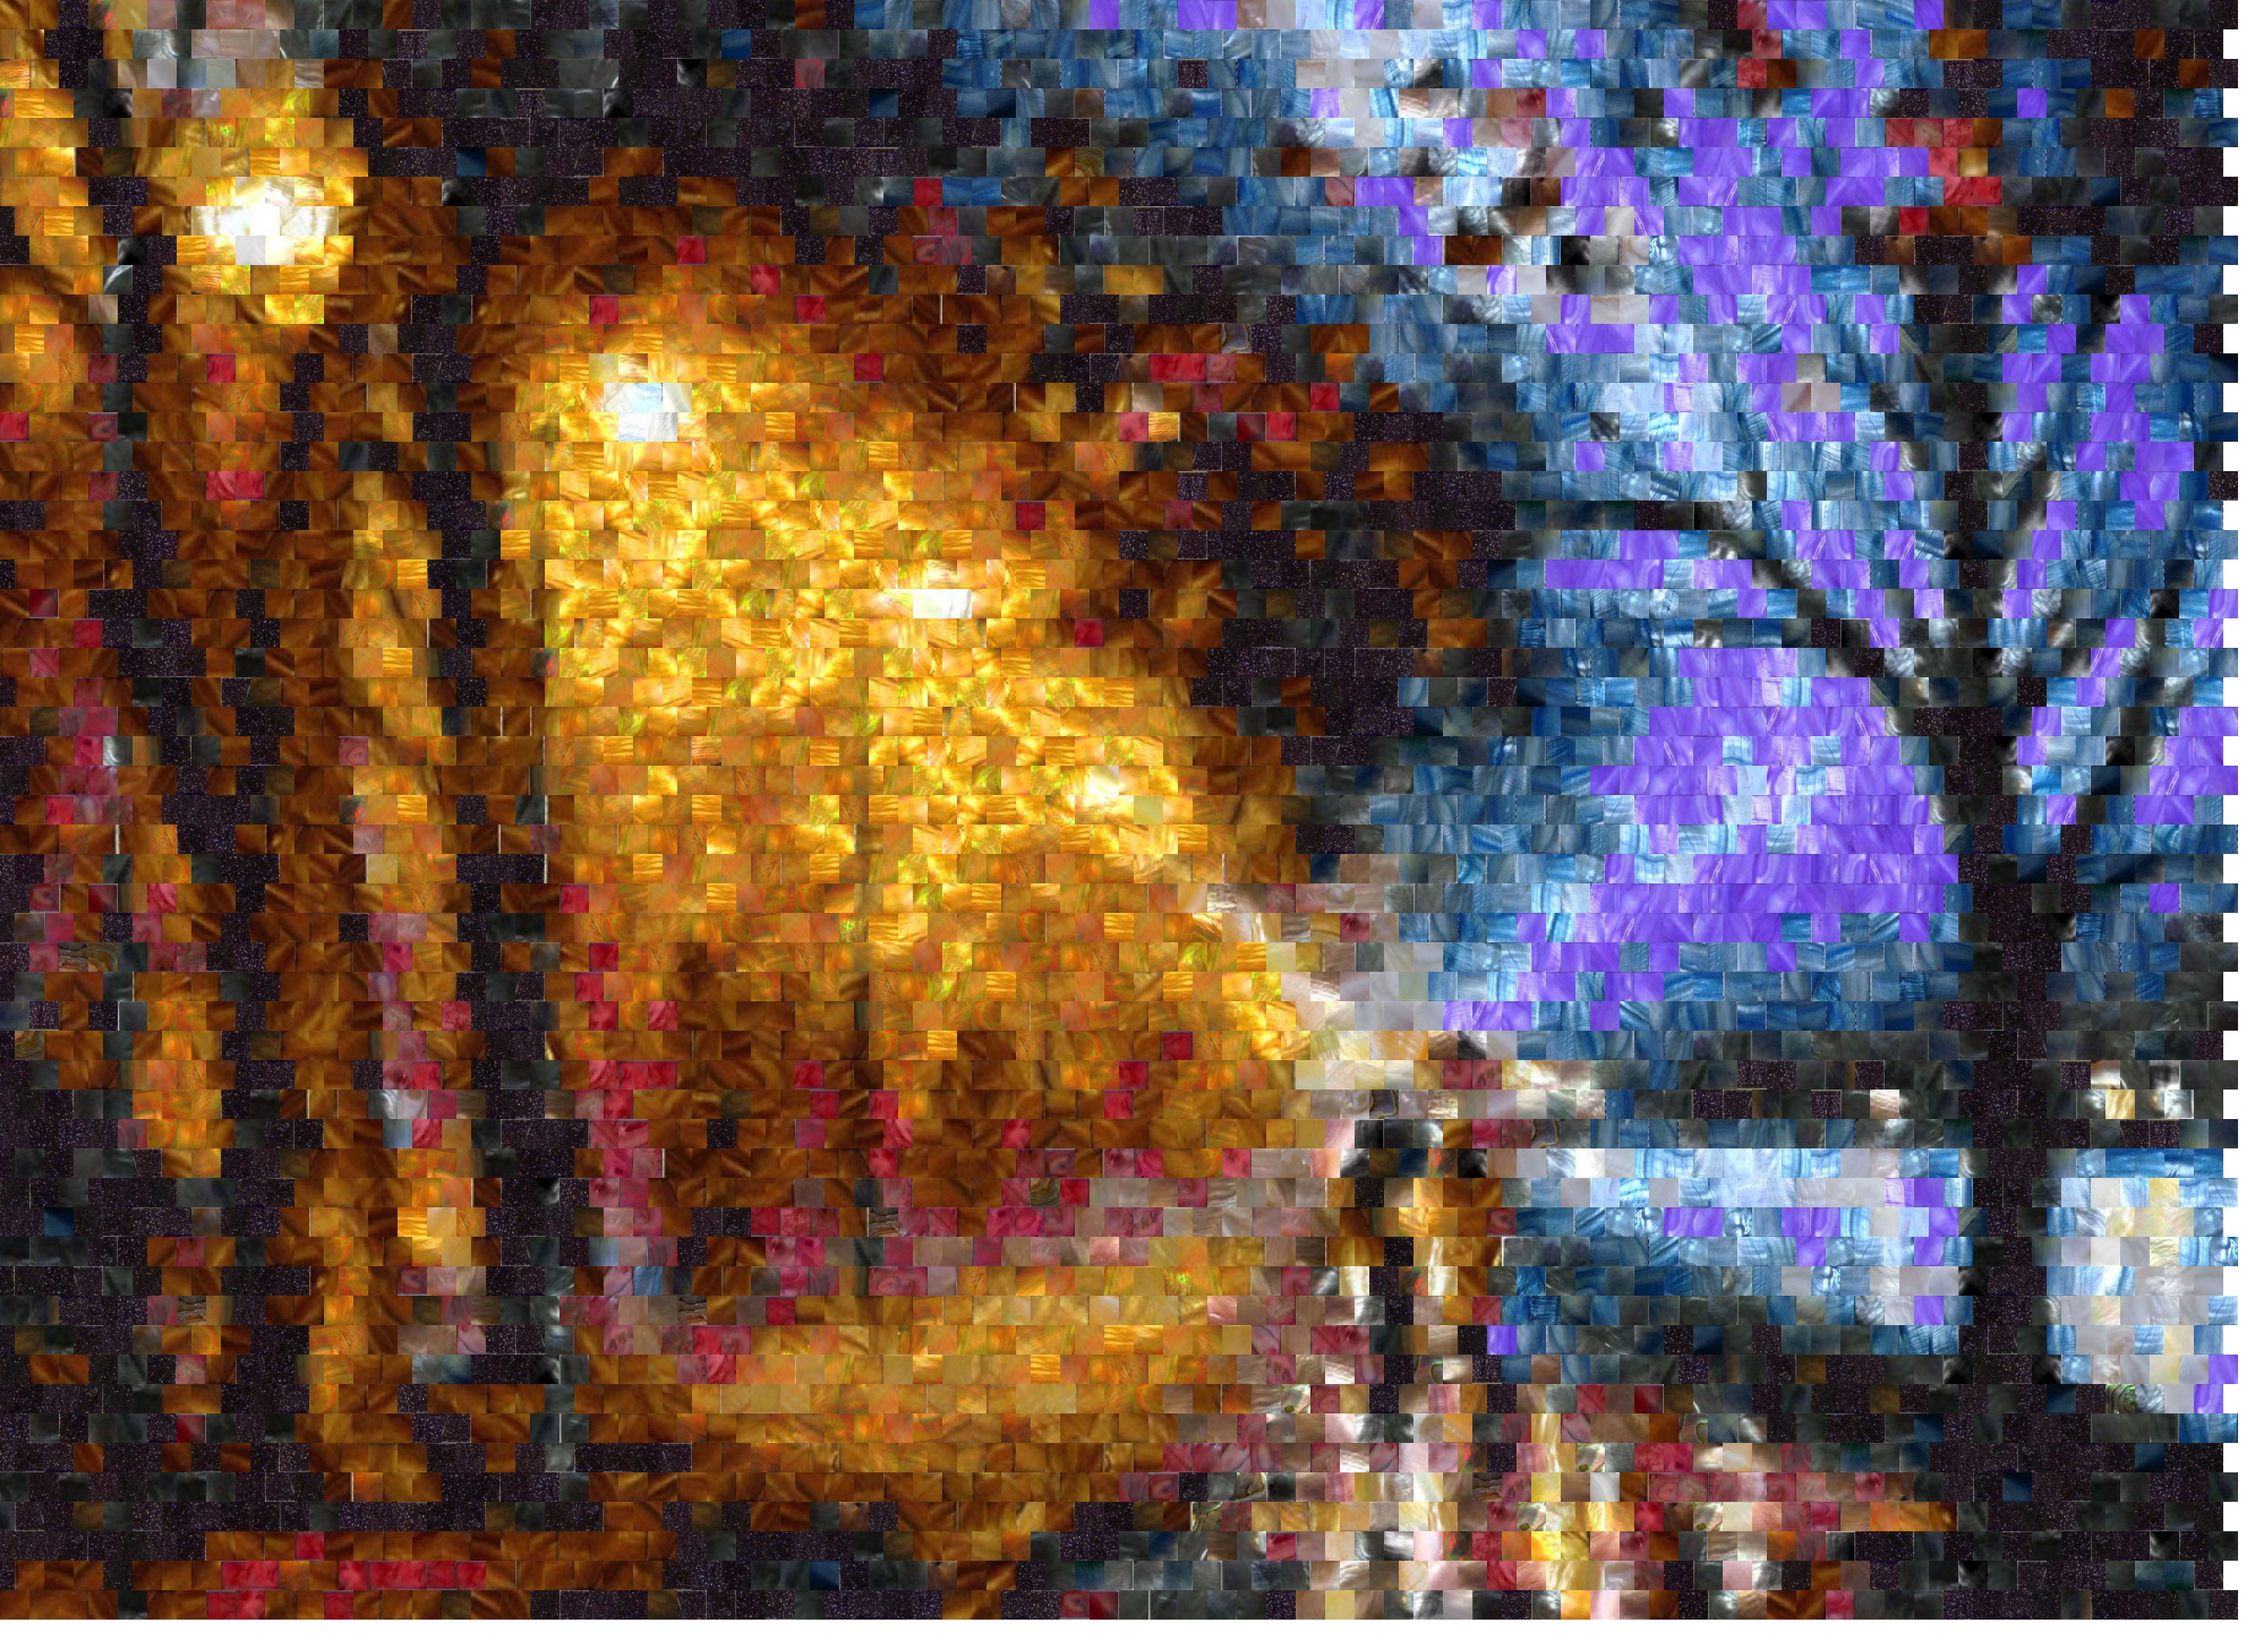 Easy mosaic photomosaic tile mosaic software tile by numbers easy mosaic photomosaic tile mosaic software tile by dailygadgetfo Gallery